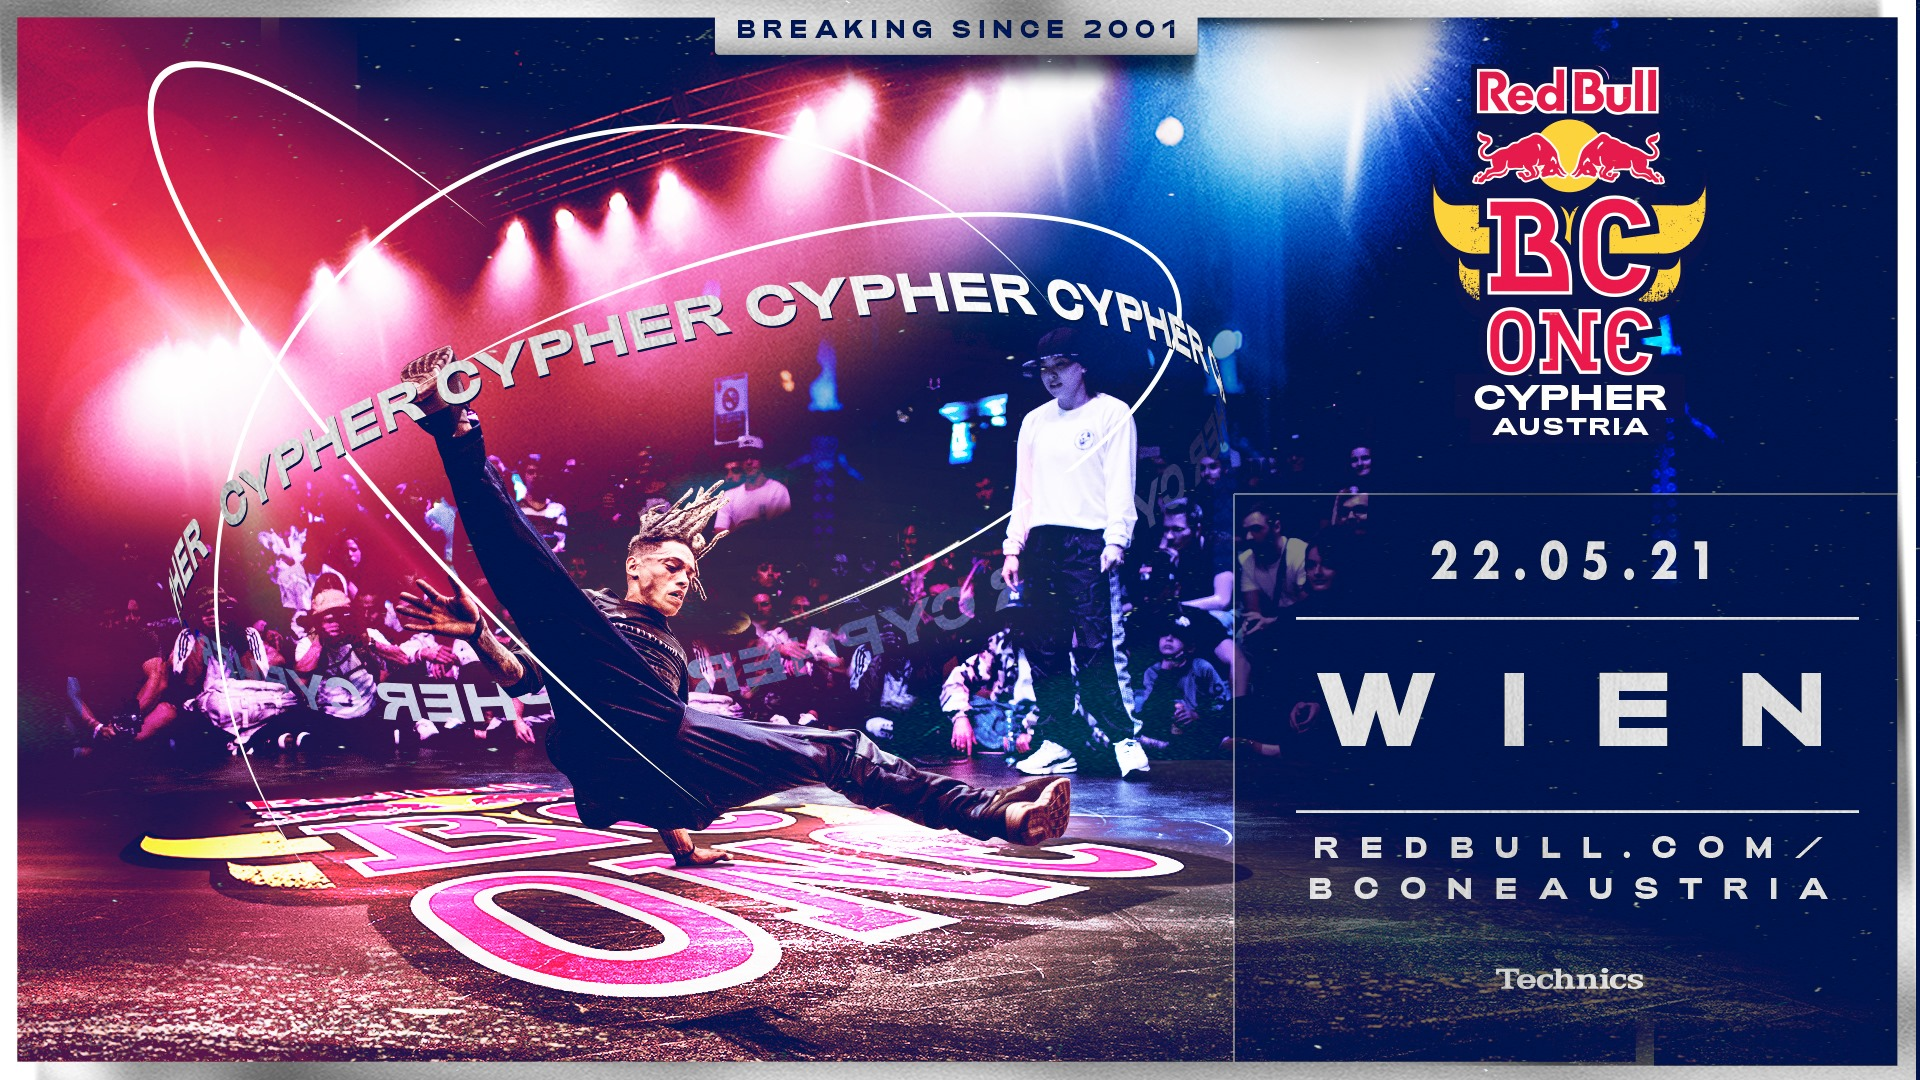 Red Bull BC One Cypher Austria 2021